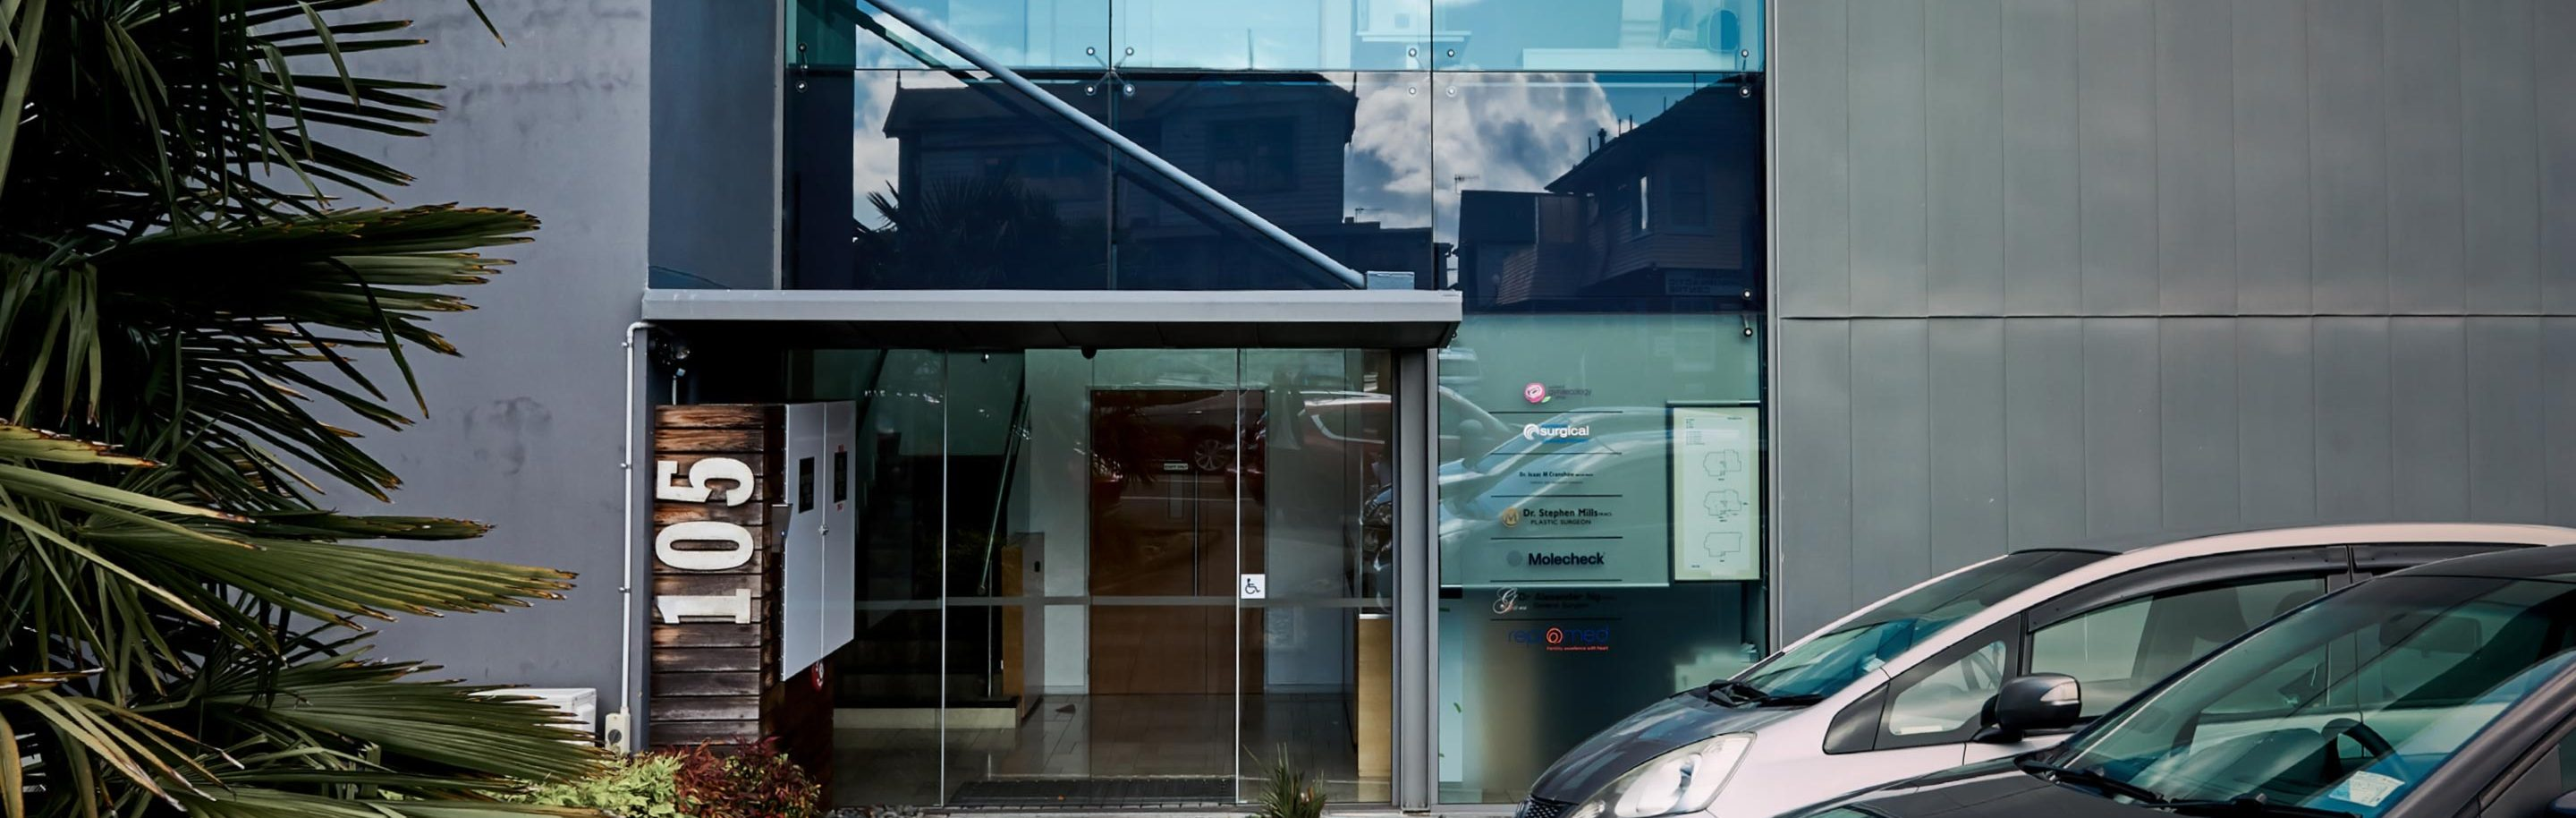 Contact Auckland City Surgical Services